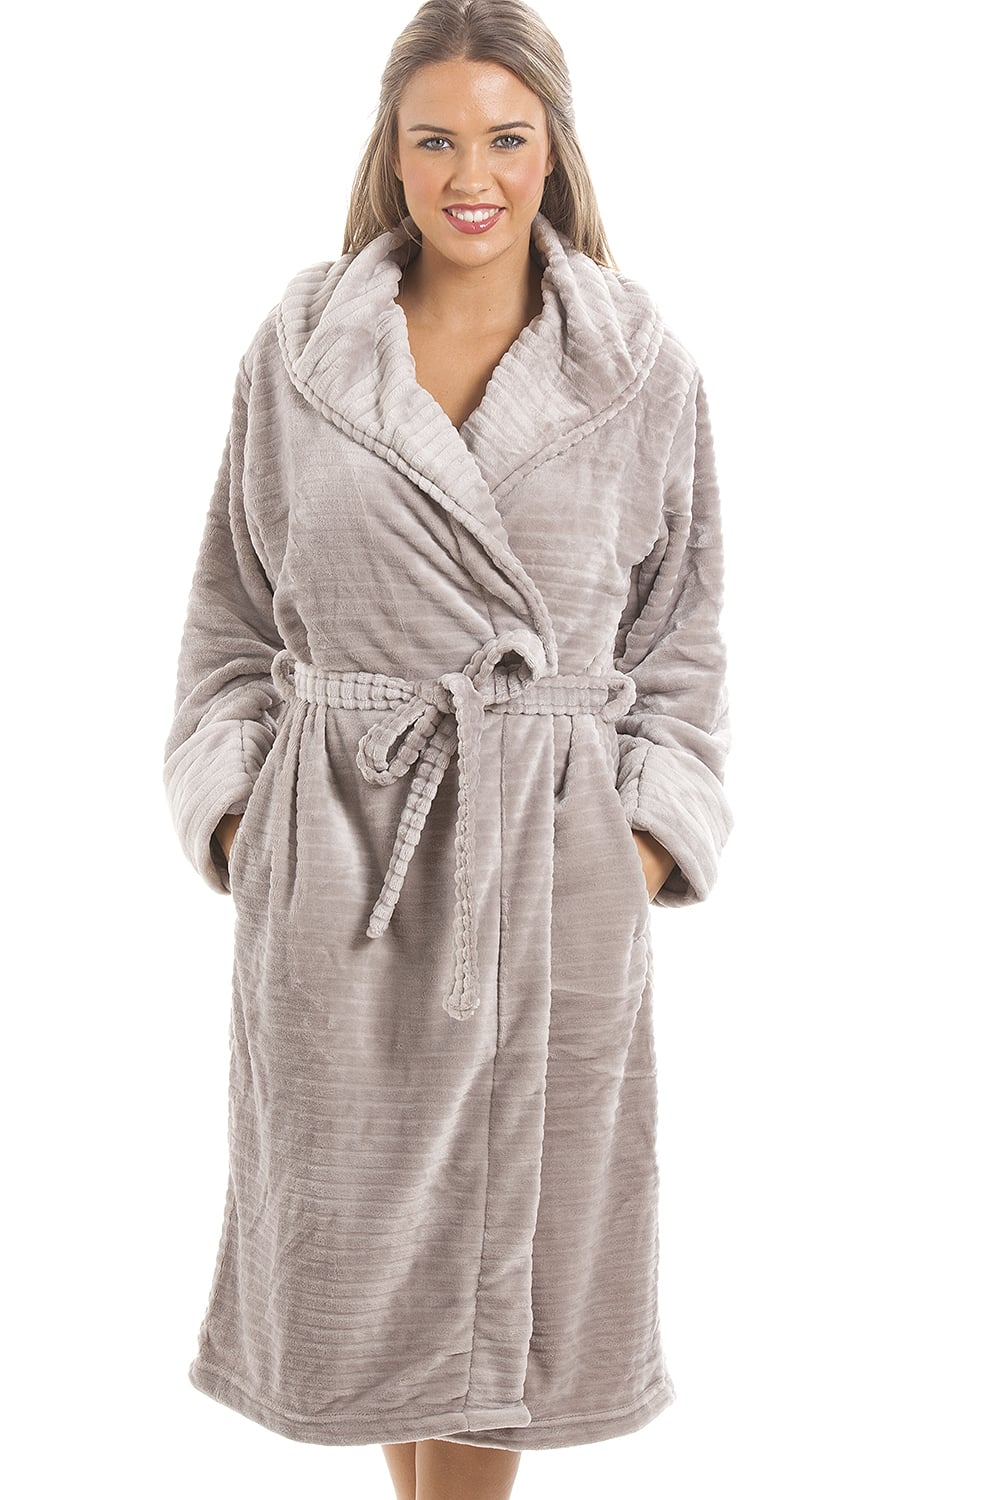 Super Soft Fleece Grey Dressing gown